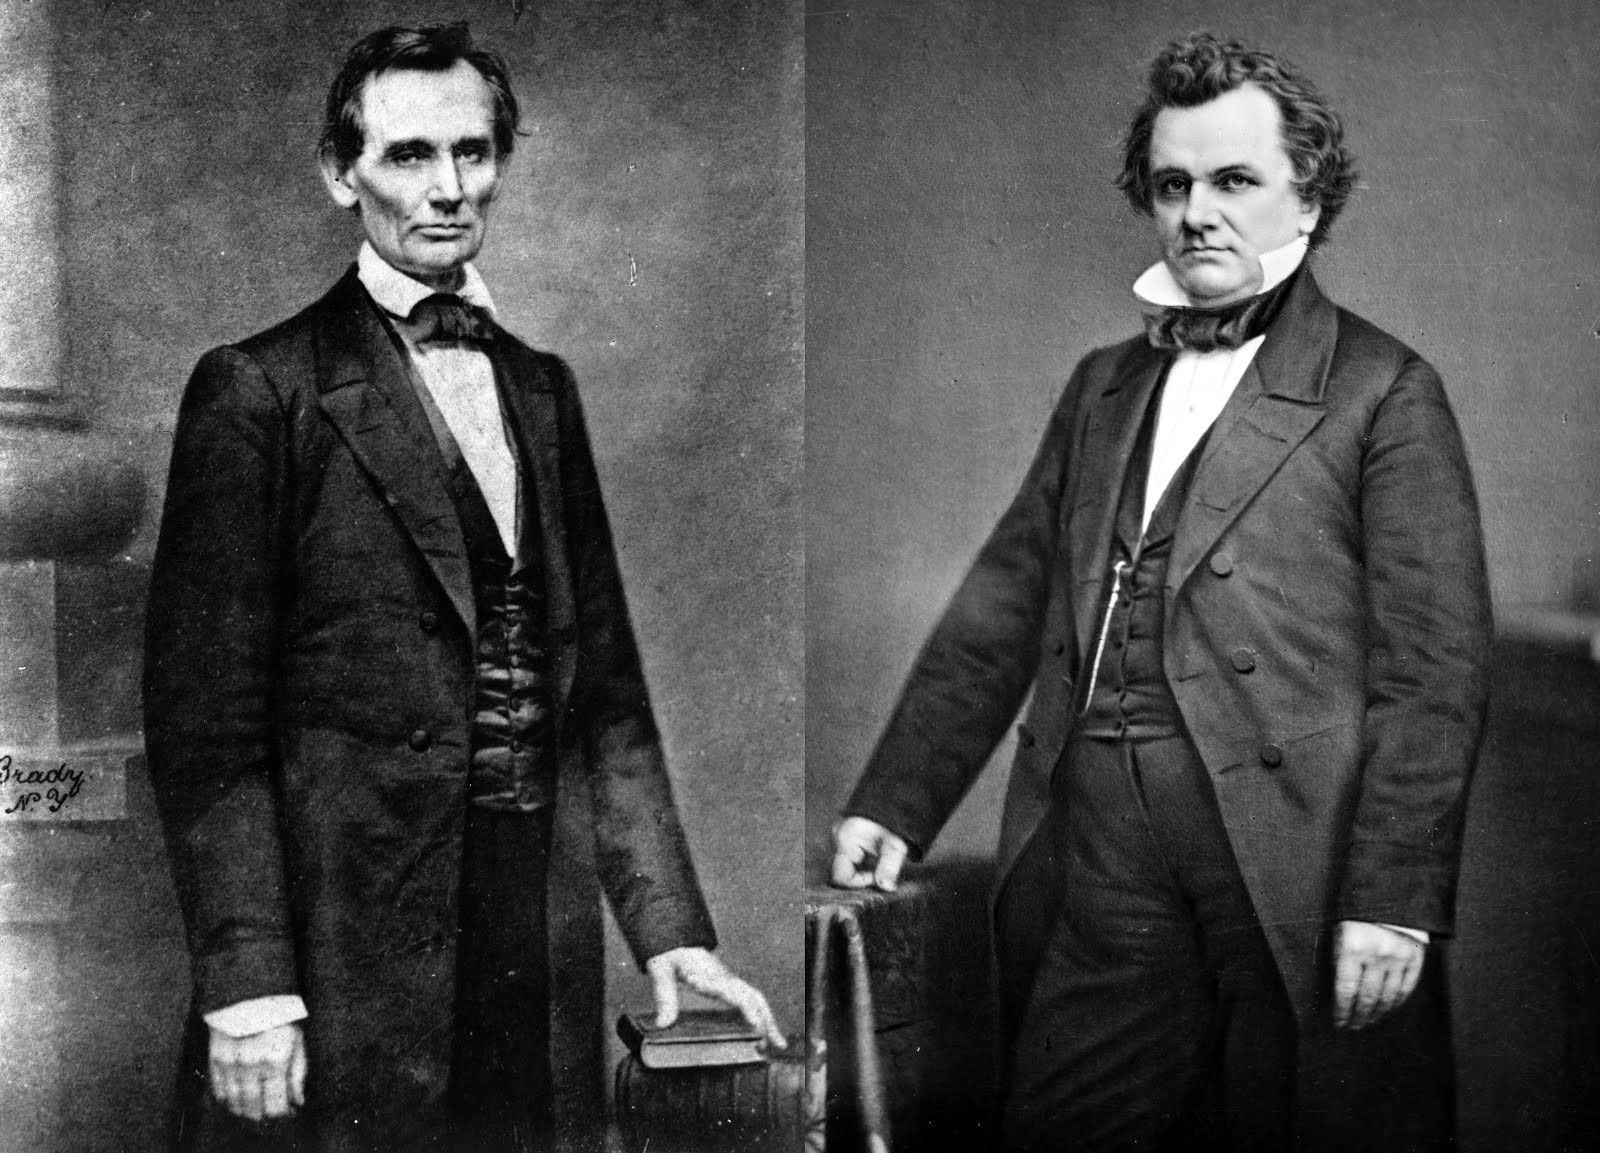 abraham lincoln first debate with stephen Lincoln douglas debates summary: the lincoln–douglas debates of 1858 were a  and the incumbent senator stephen douglas, the democratic party candidate  desire to preserve slavery that had animated secession in the first place.